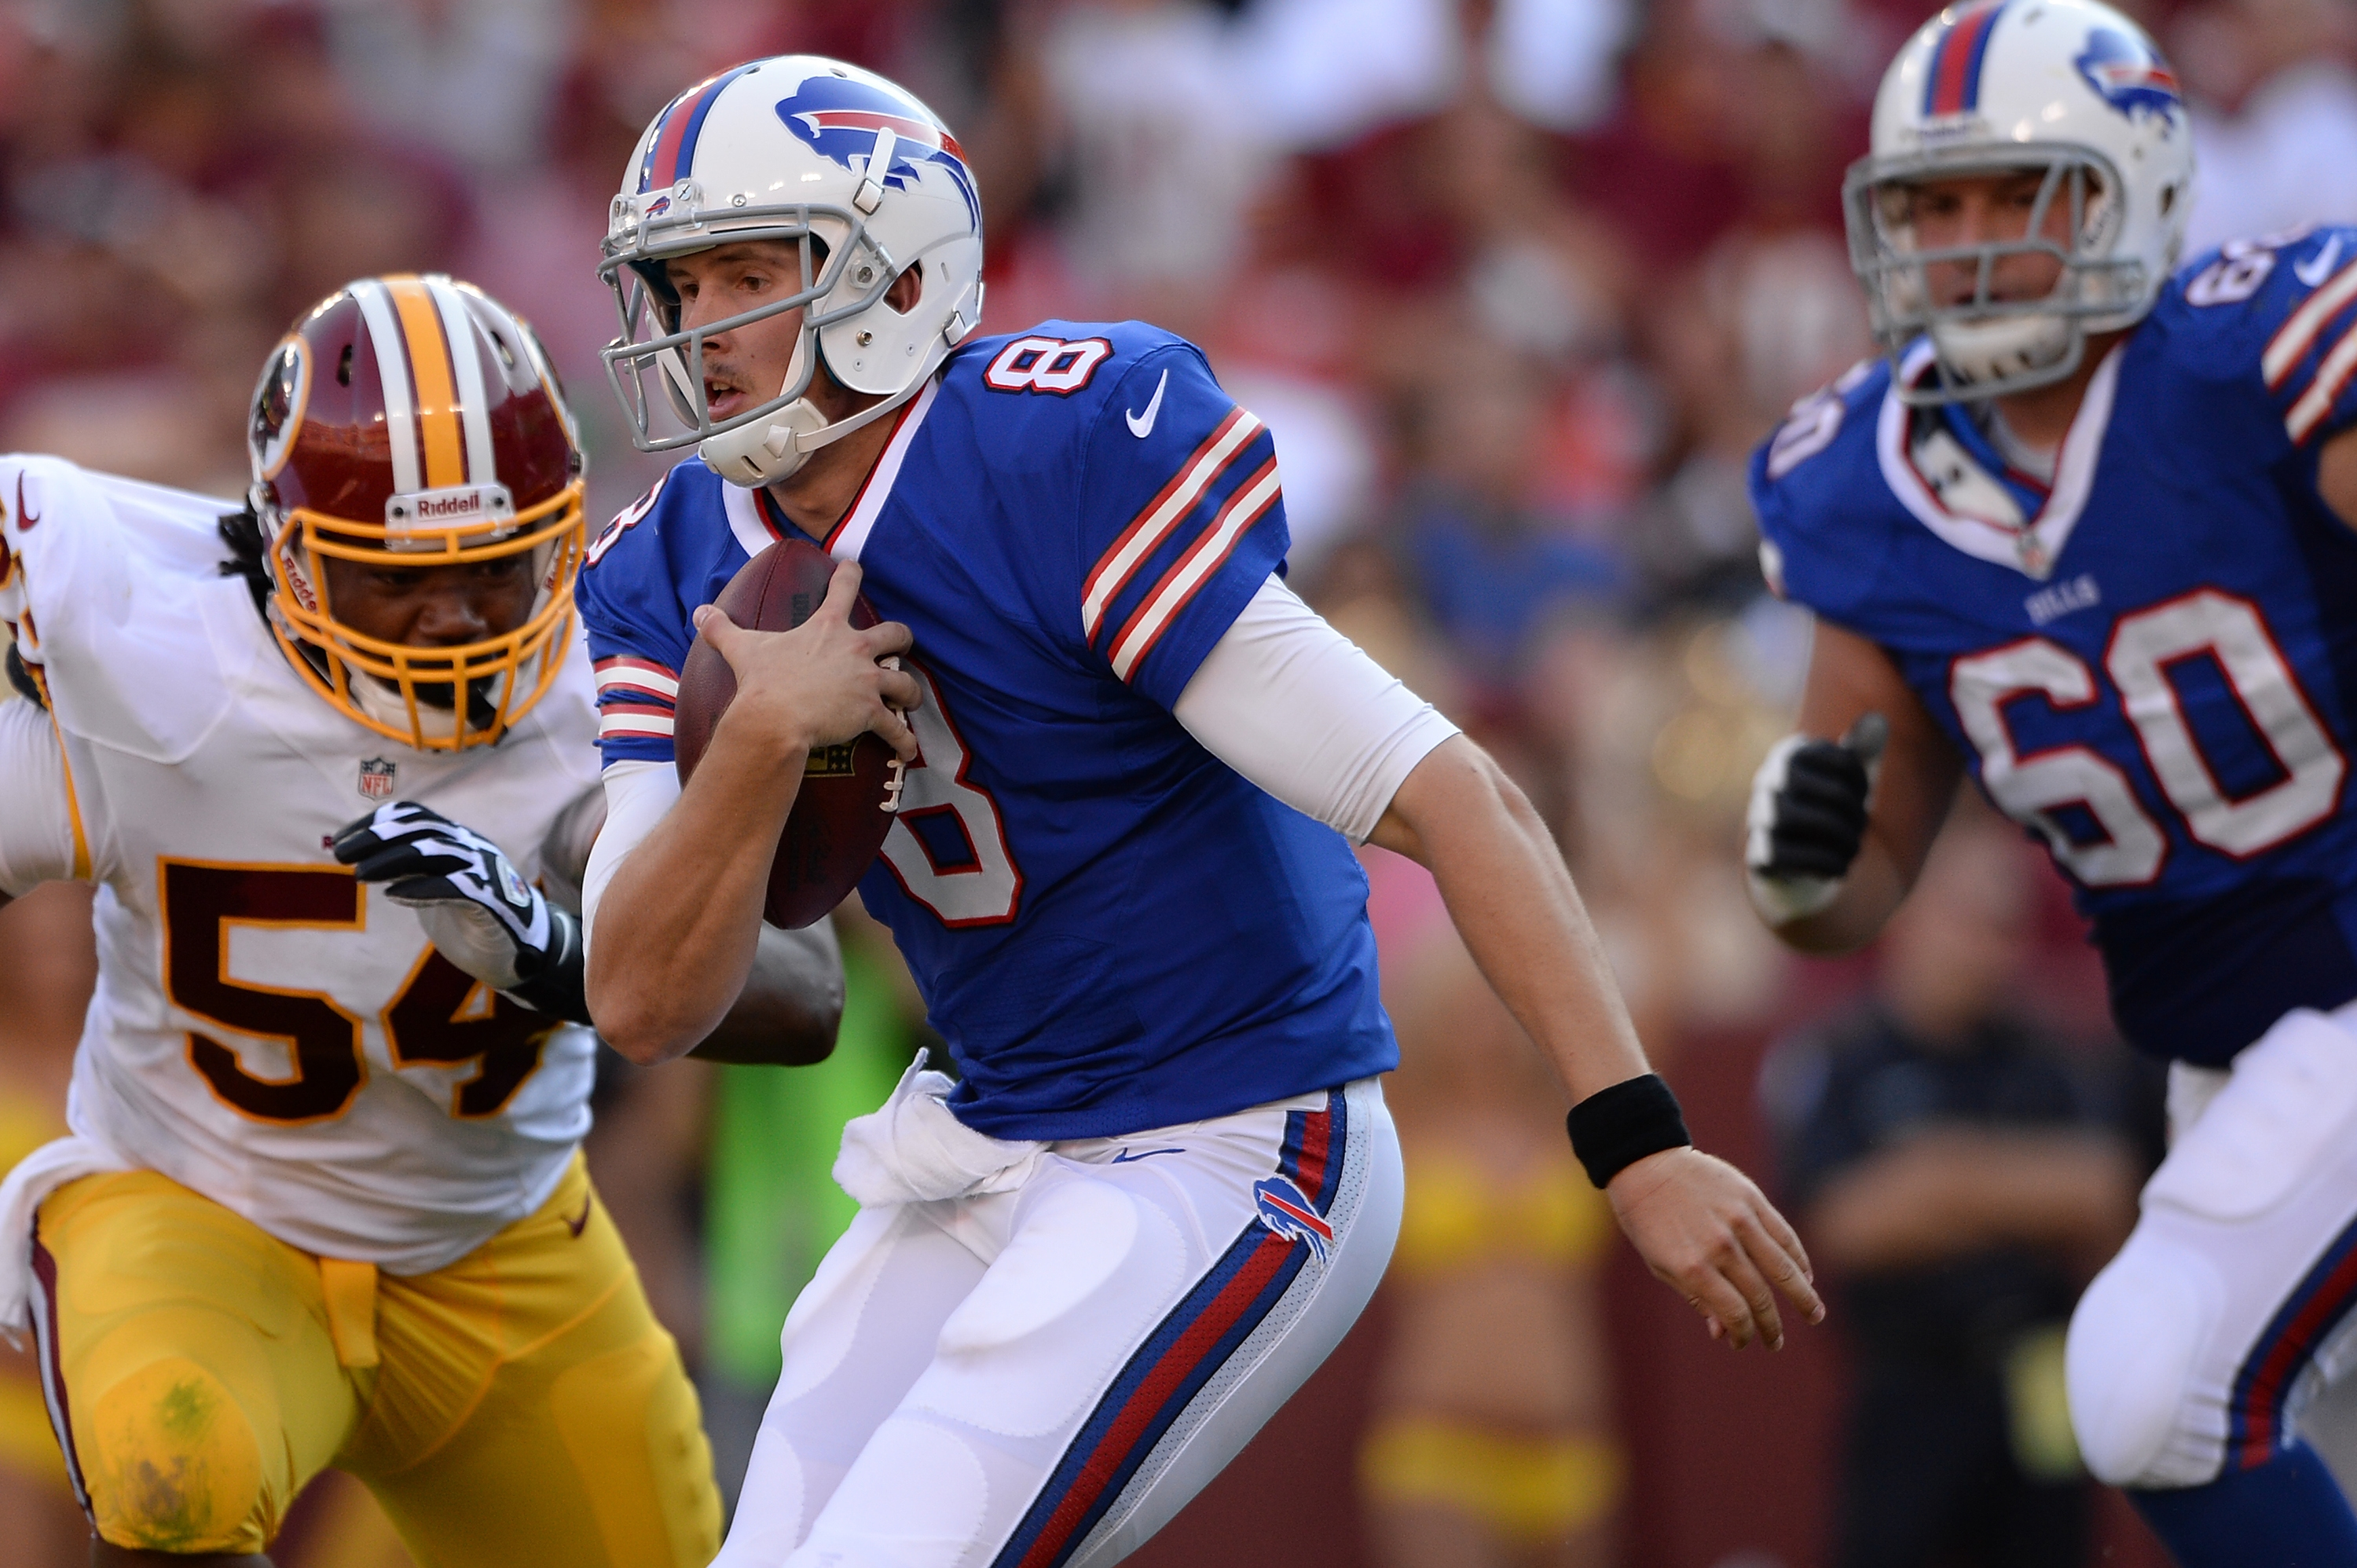 Undrafted free agent Jeff Tuel is the only healthy quarterback on the roster after Kevin Kolb was knocked out of Saturday's game.